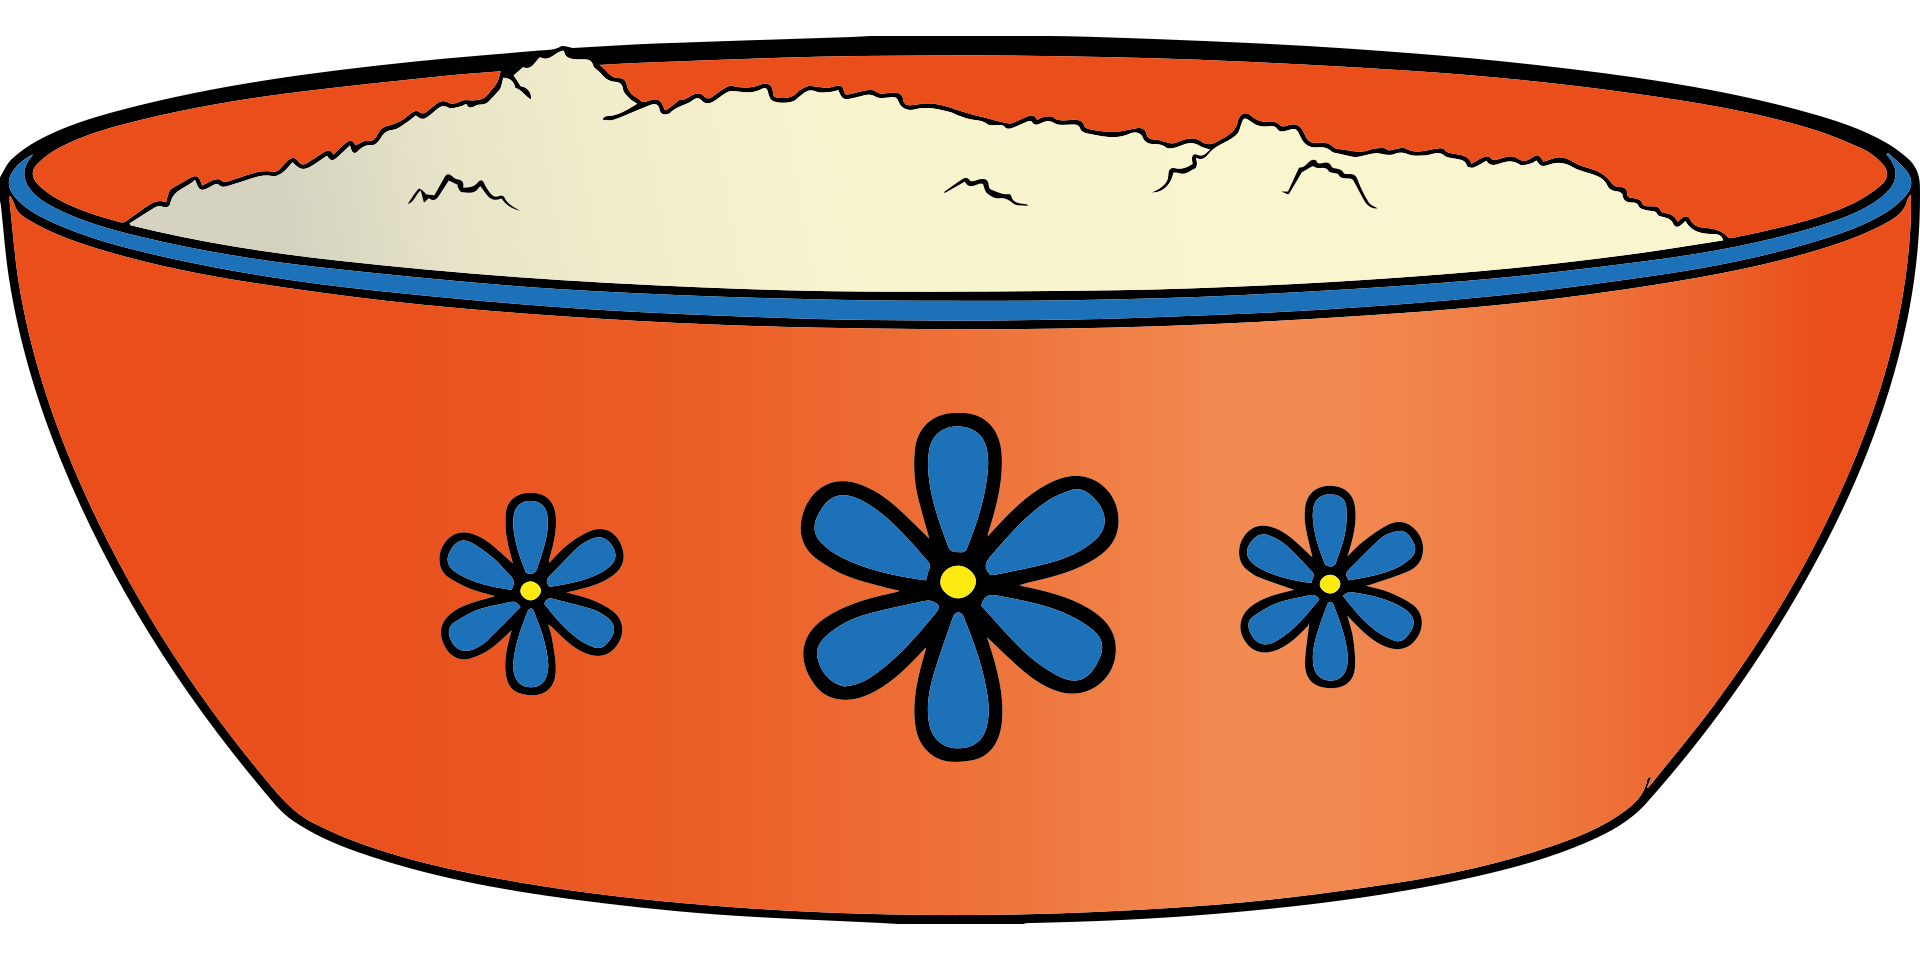 Drawing of an orange bowl with blue flowers on it. The bowl has what looks like rice cereal in it.